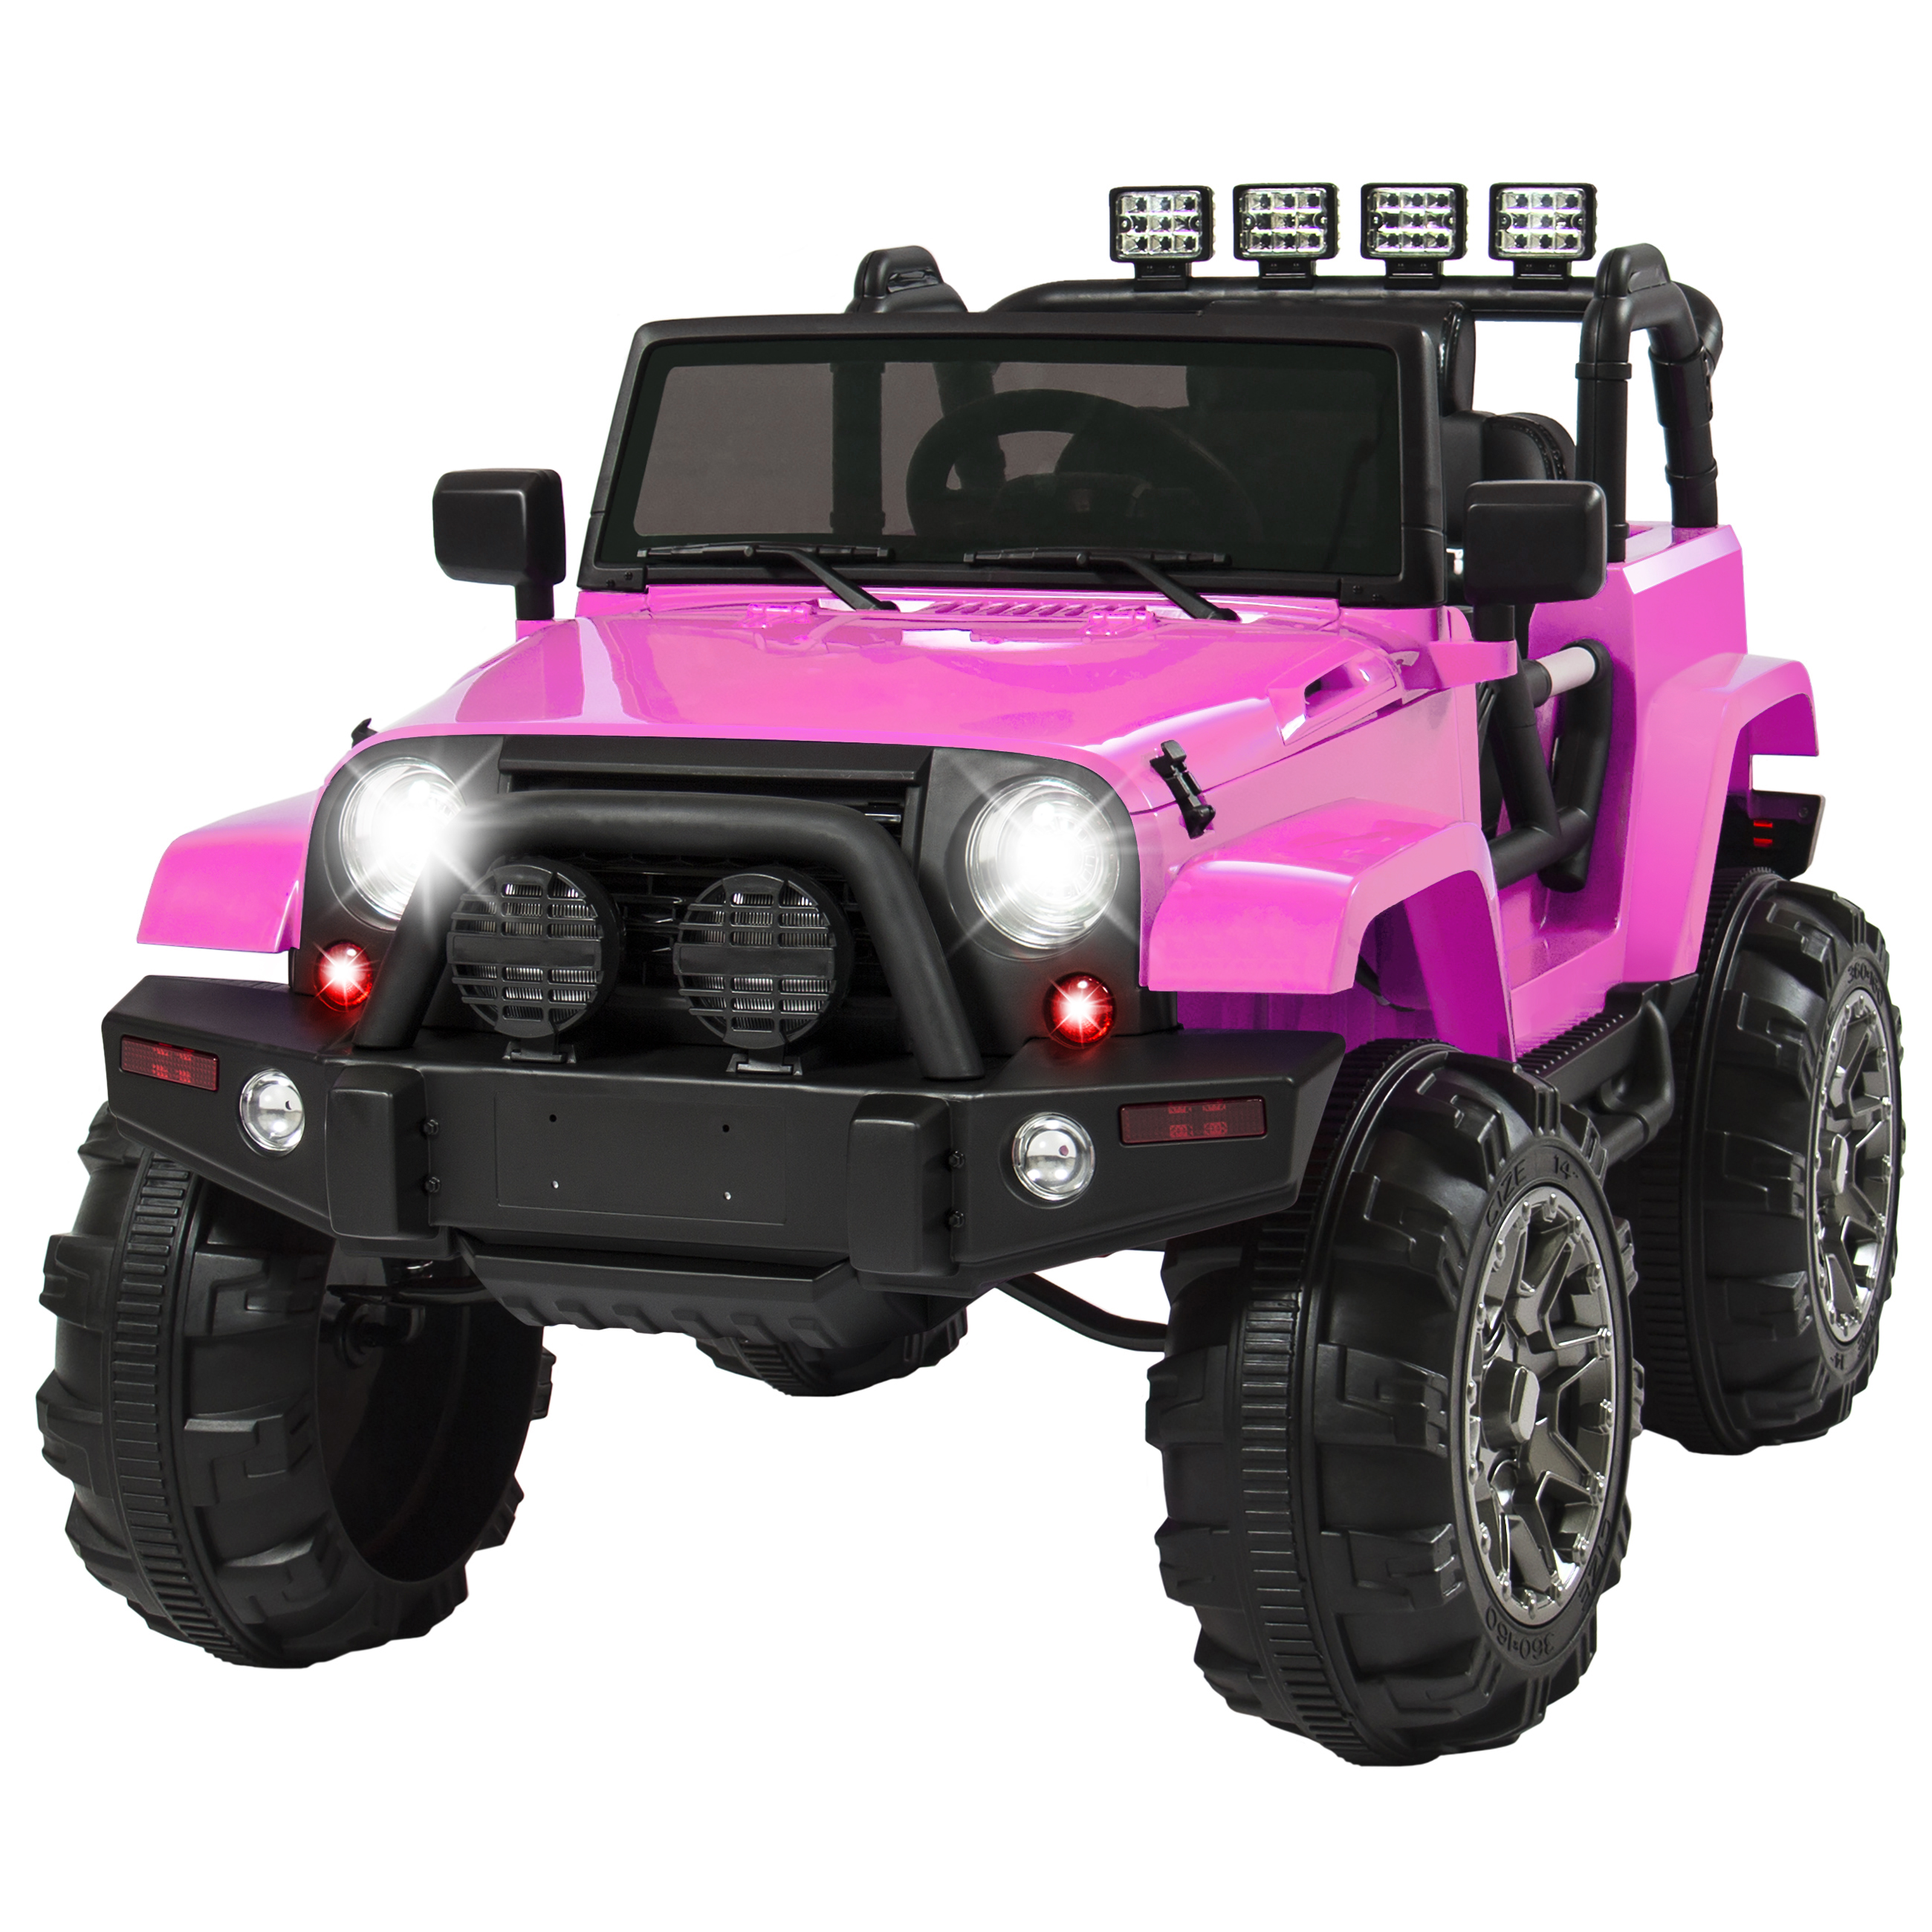 Best Choice Products 12V Ride On Car Truck w  Remote Control, 3 Speeds, Spring Suspension, LED Lights Pink by